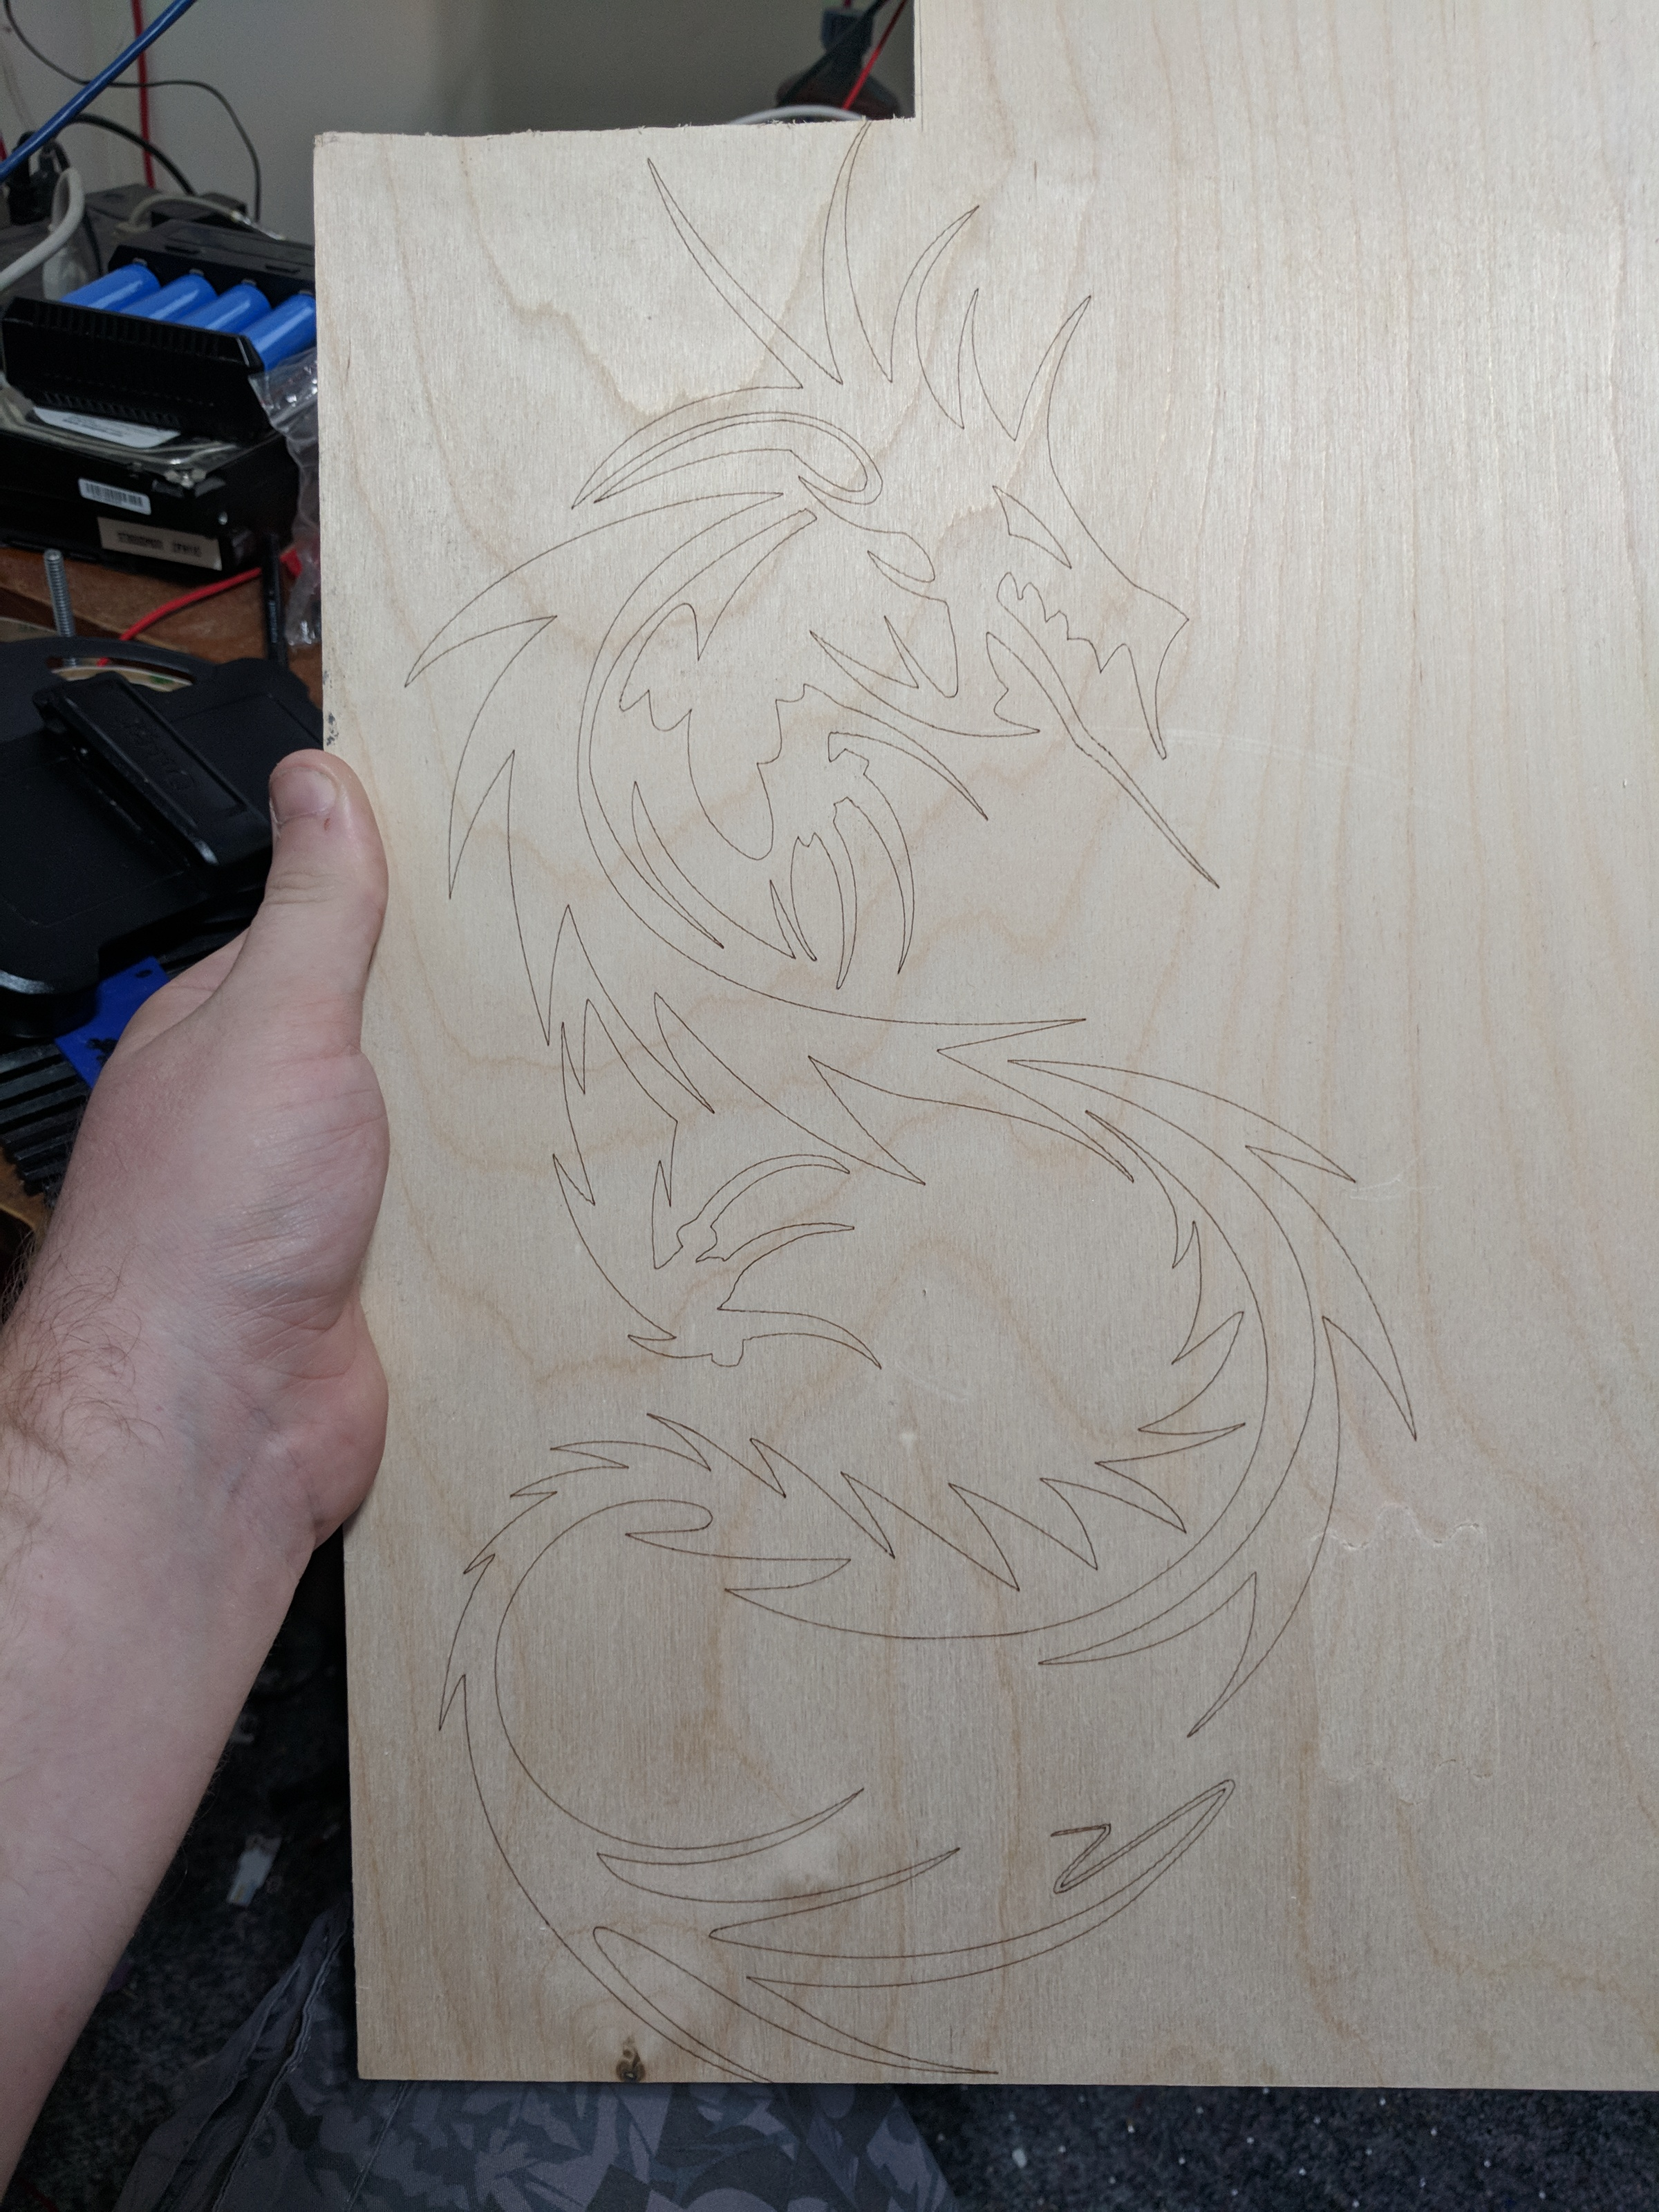 Testing the dragon design on a scrap